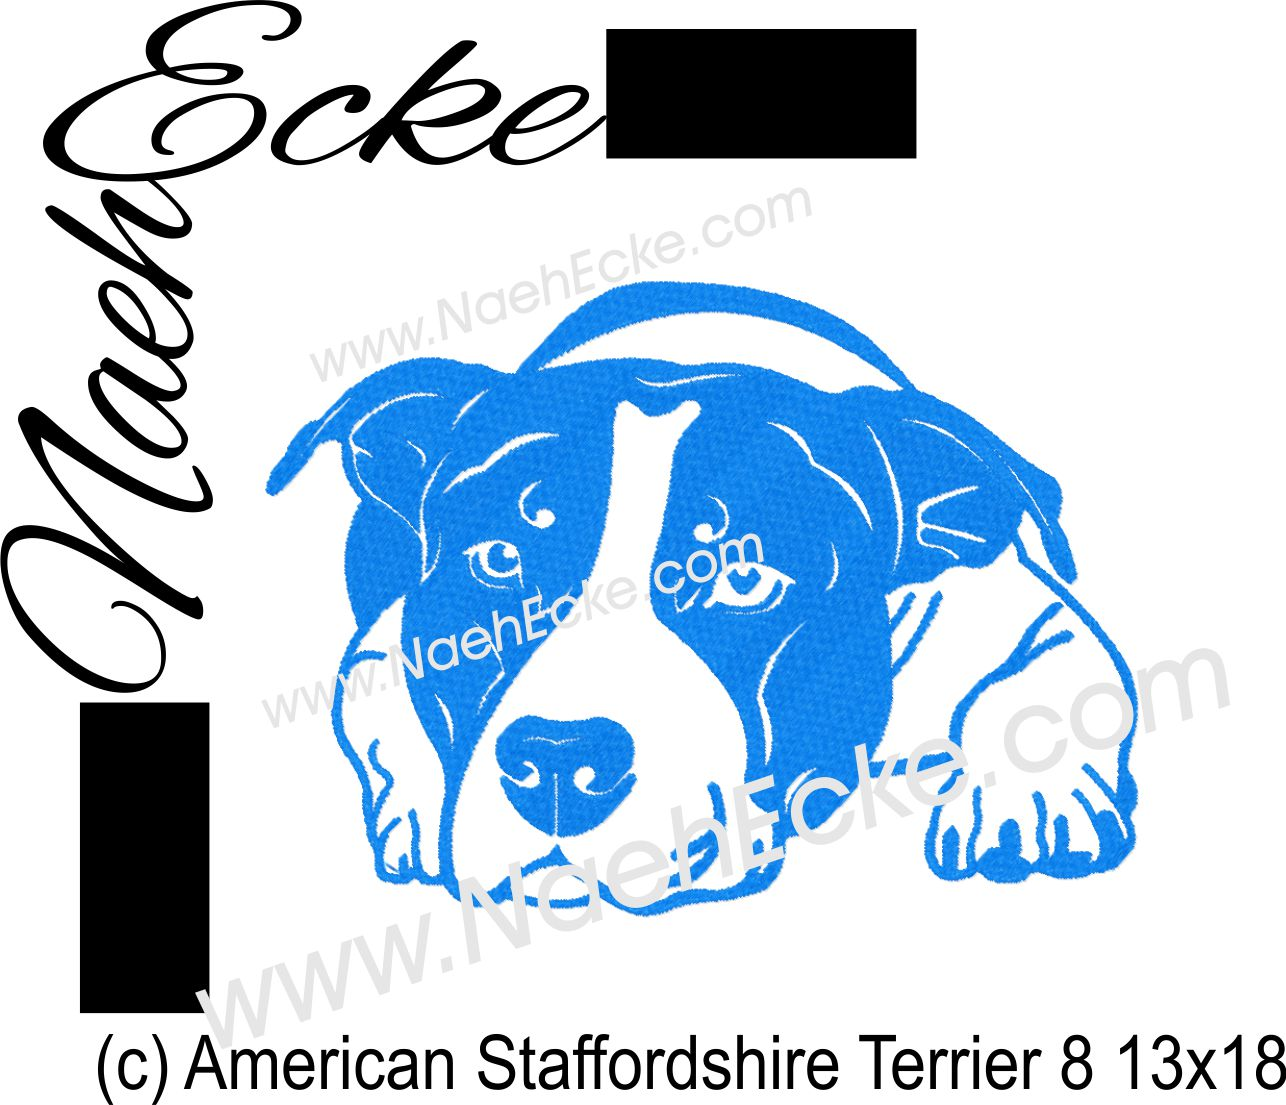 American Staffordshire Terrier 8